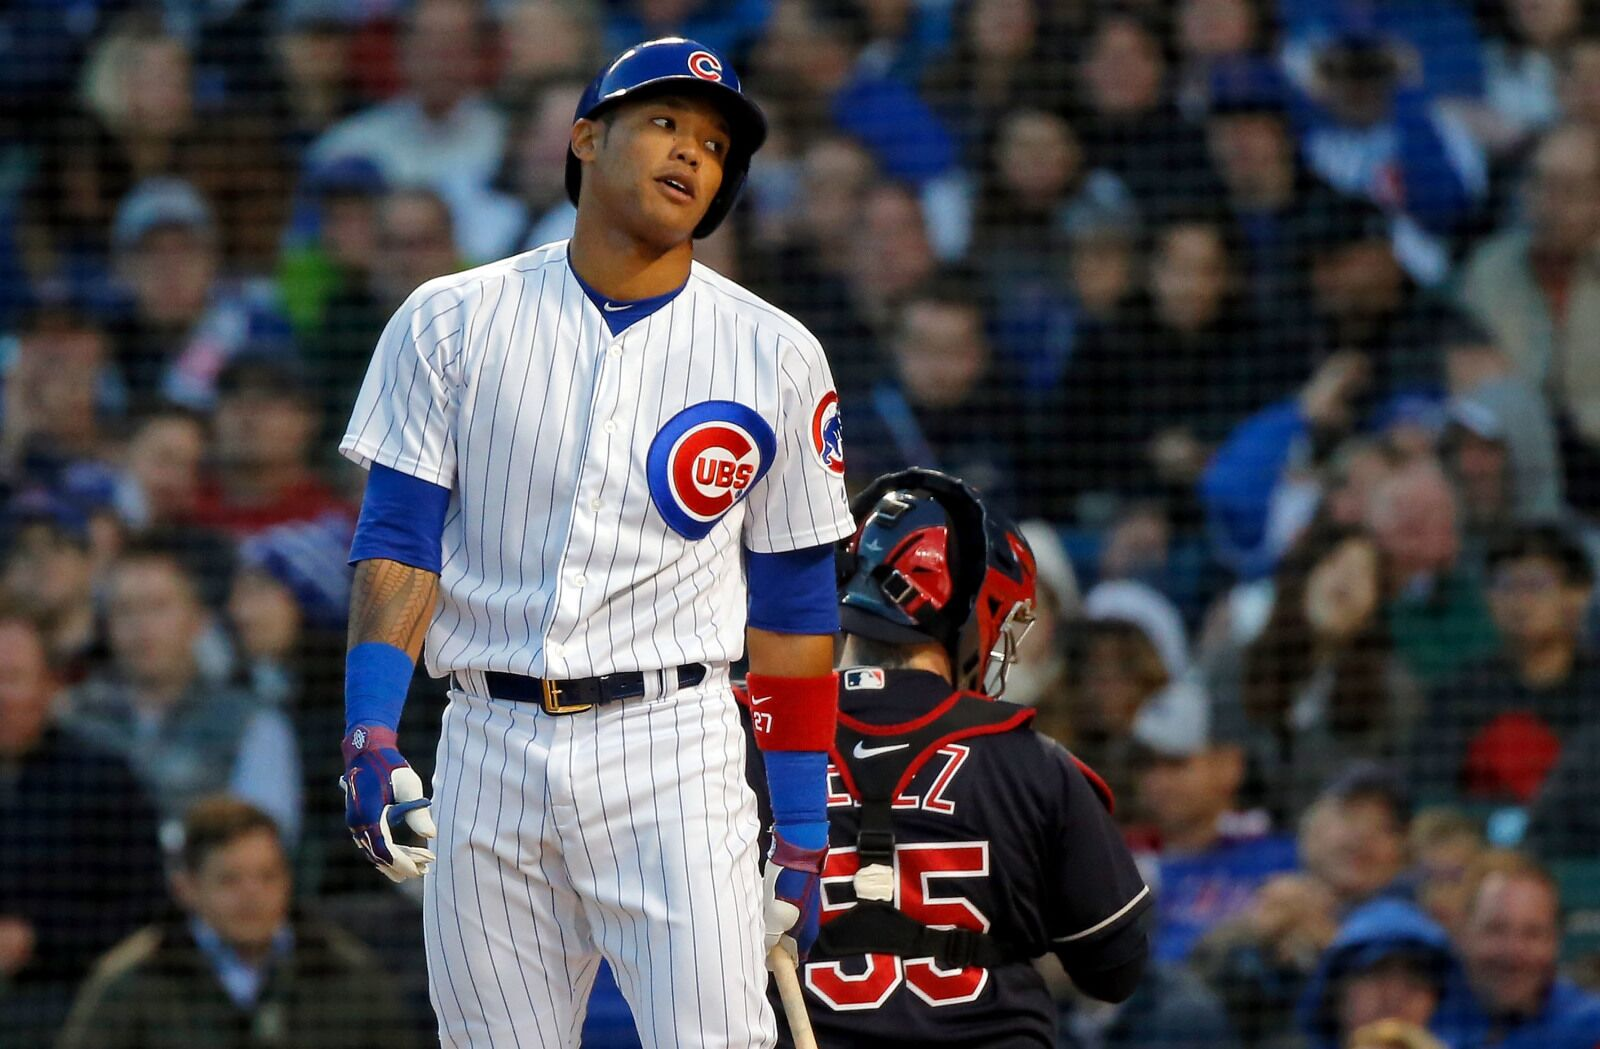 Chicago Cubs lack a quality second baseman heading into second half